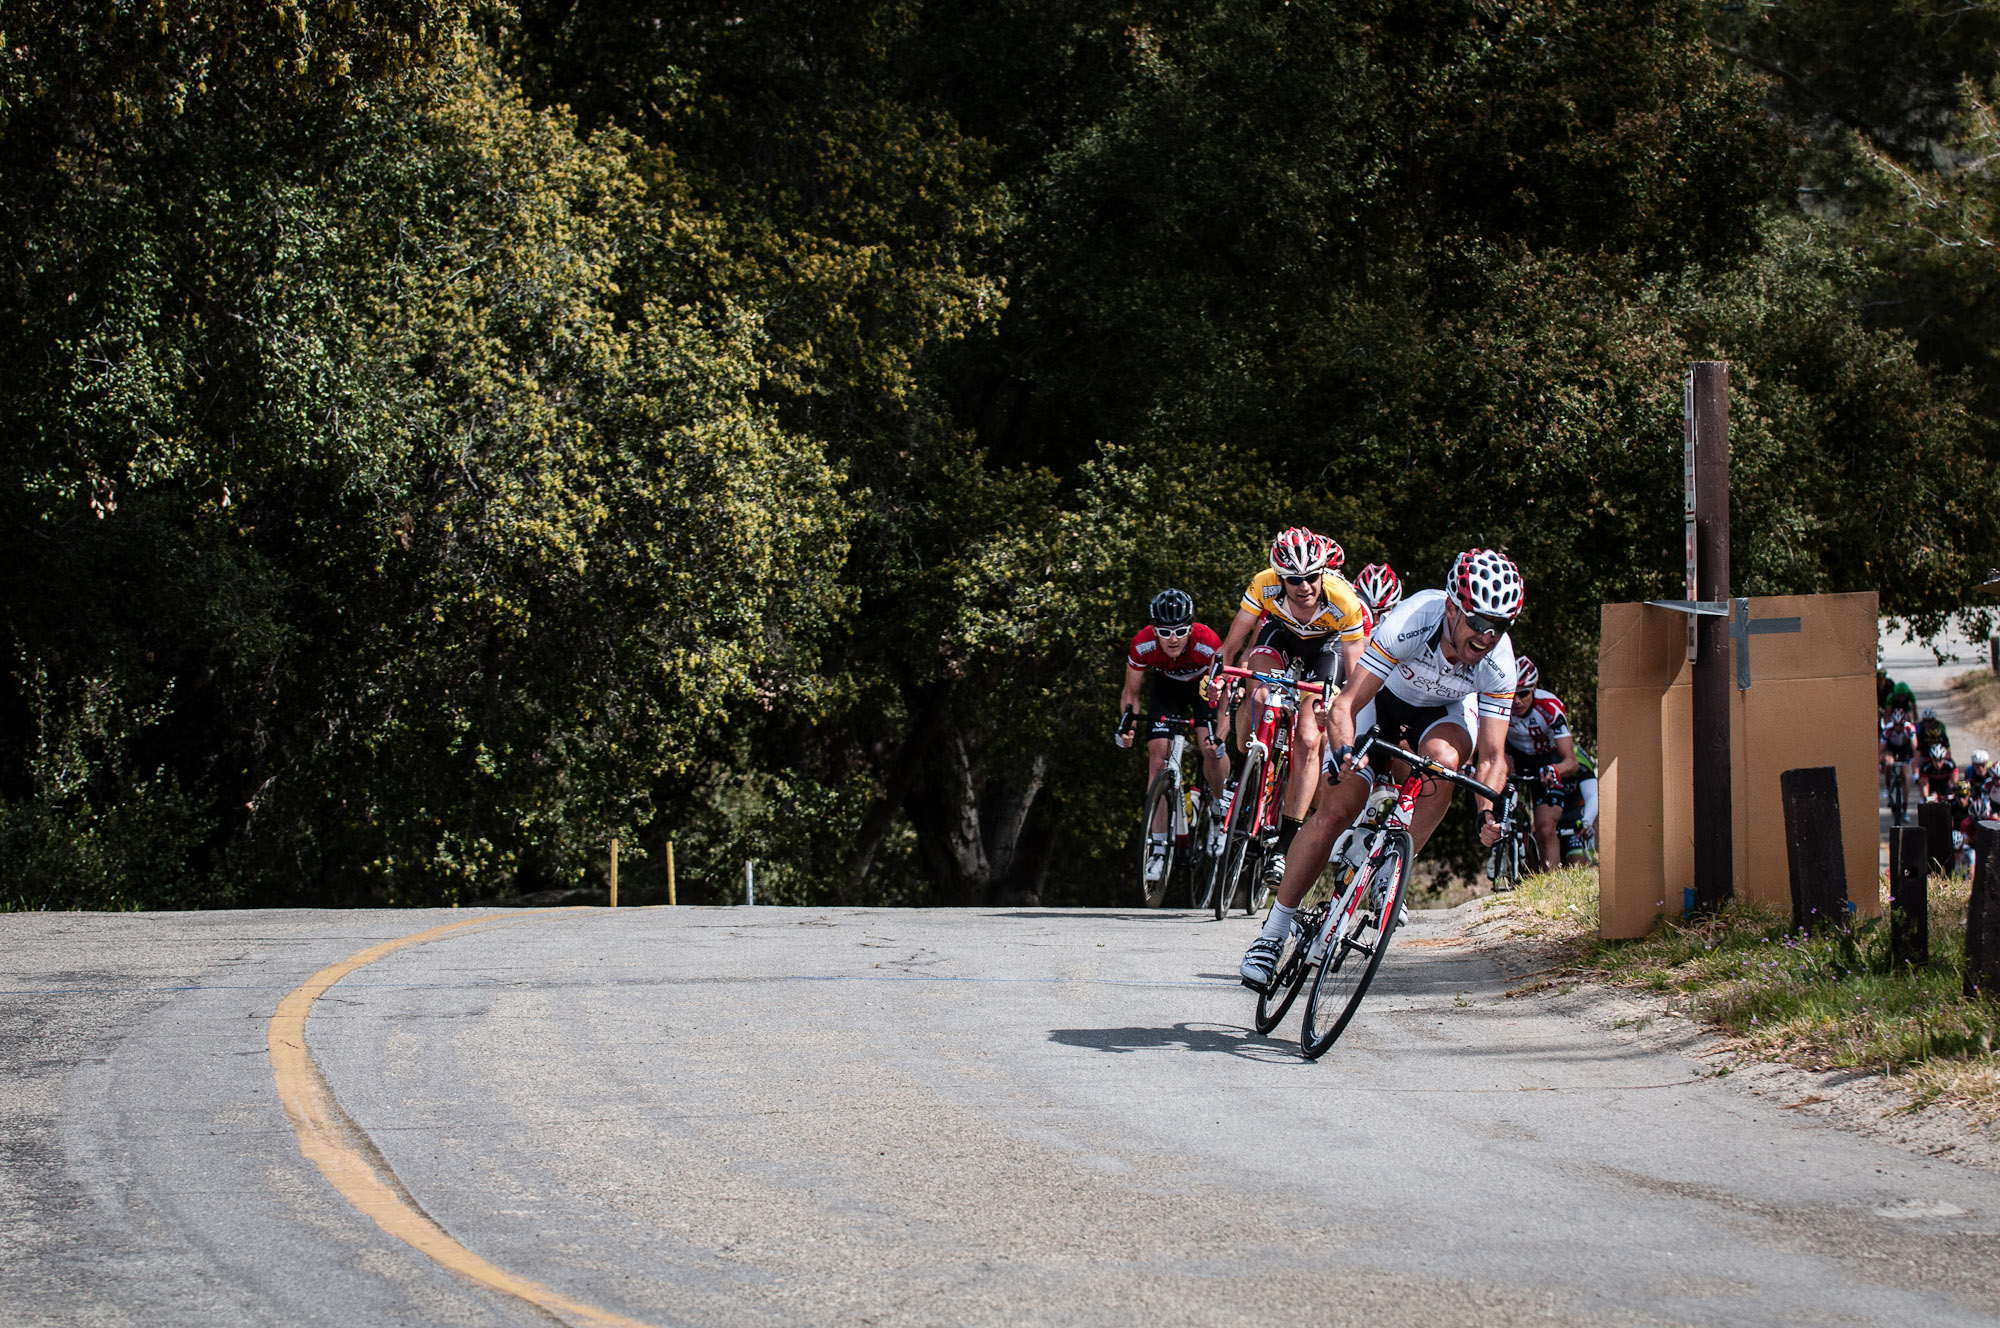 Mancebo chases the break during the City of Beaumont Circuit Road Race. Photo: Tommy Chandler/Competitive Cyclist.